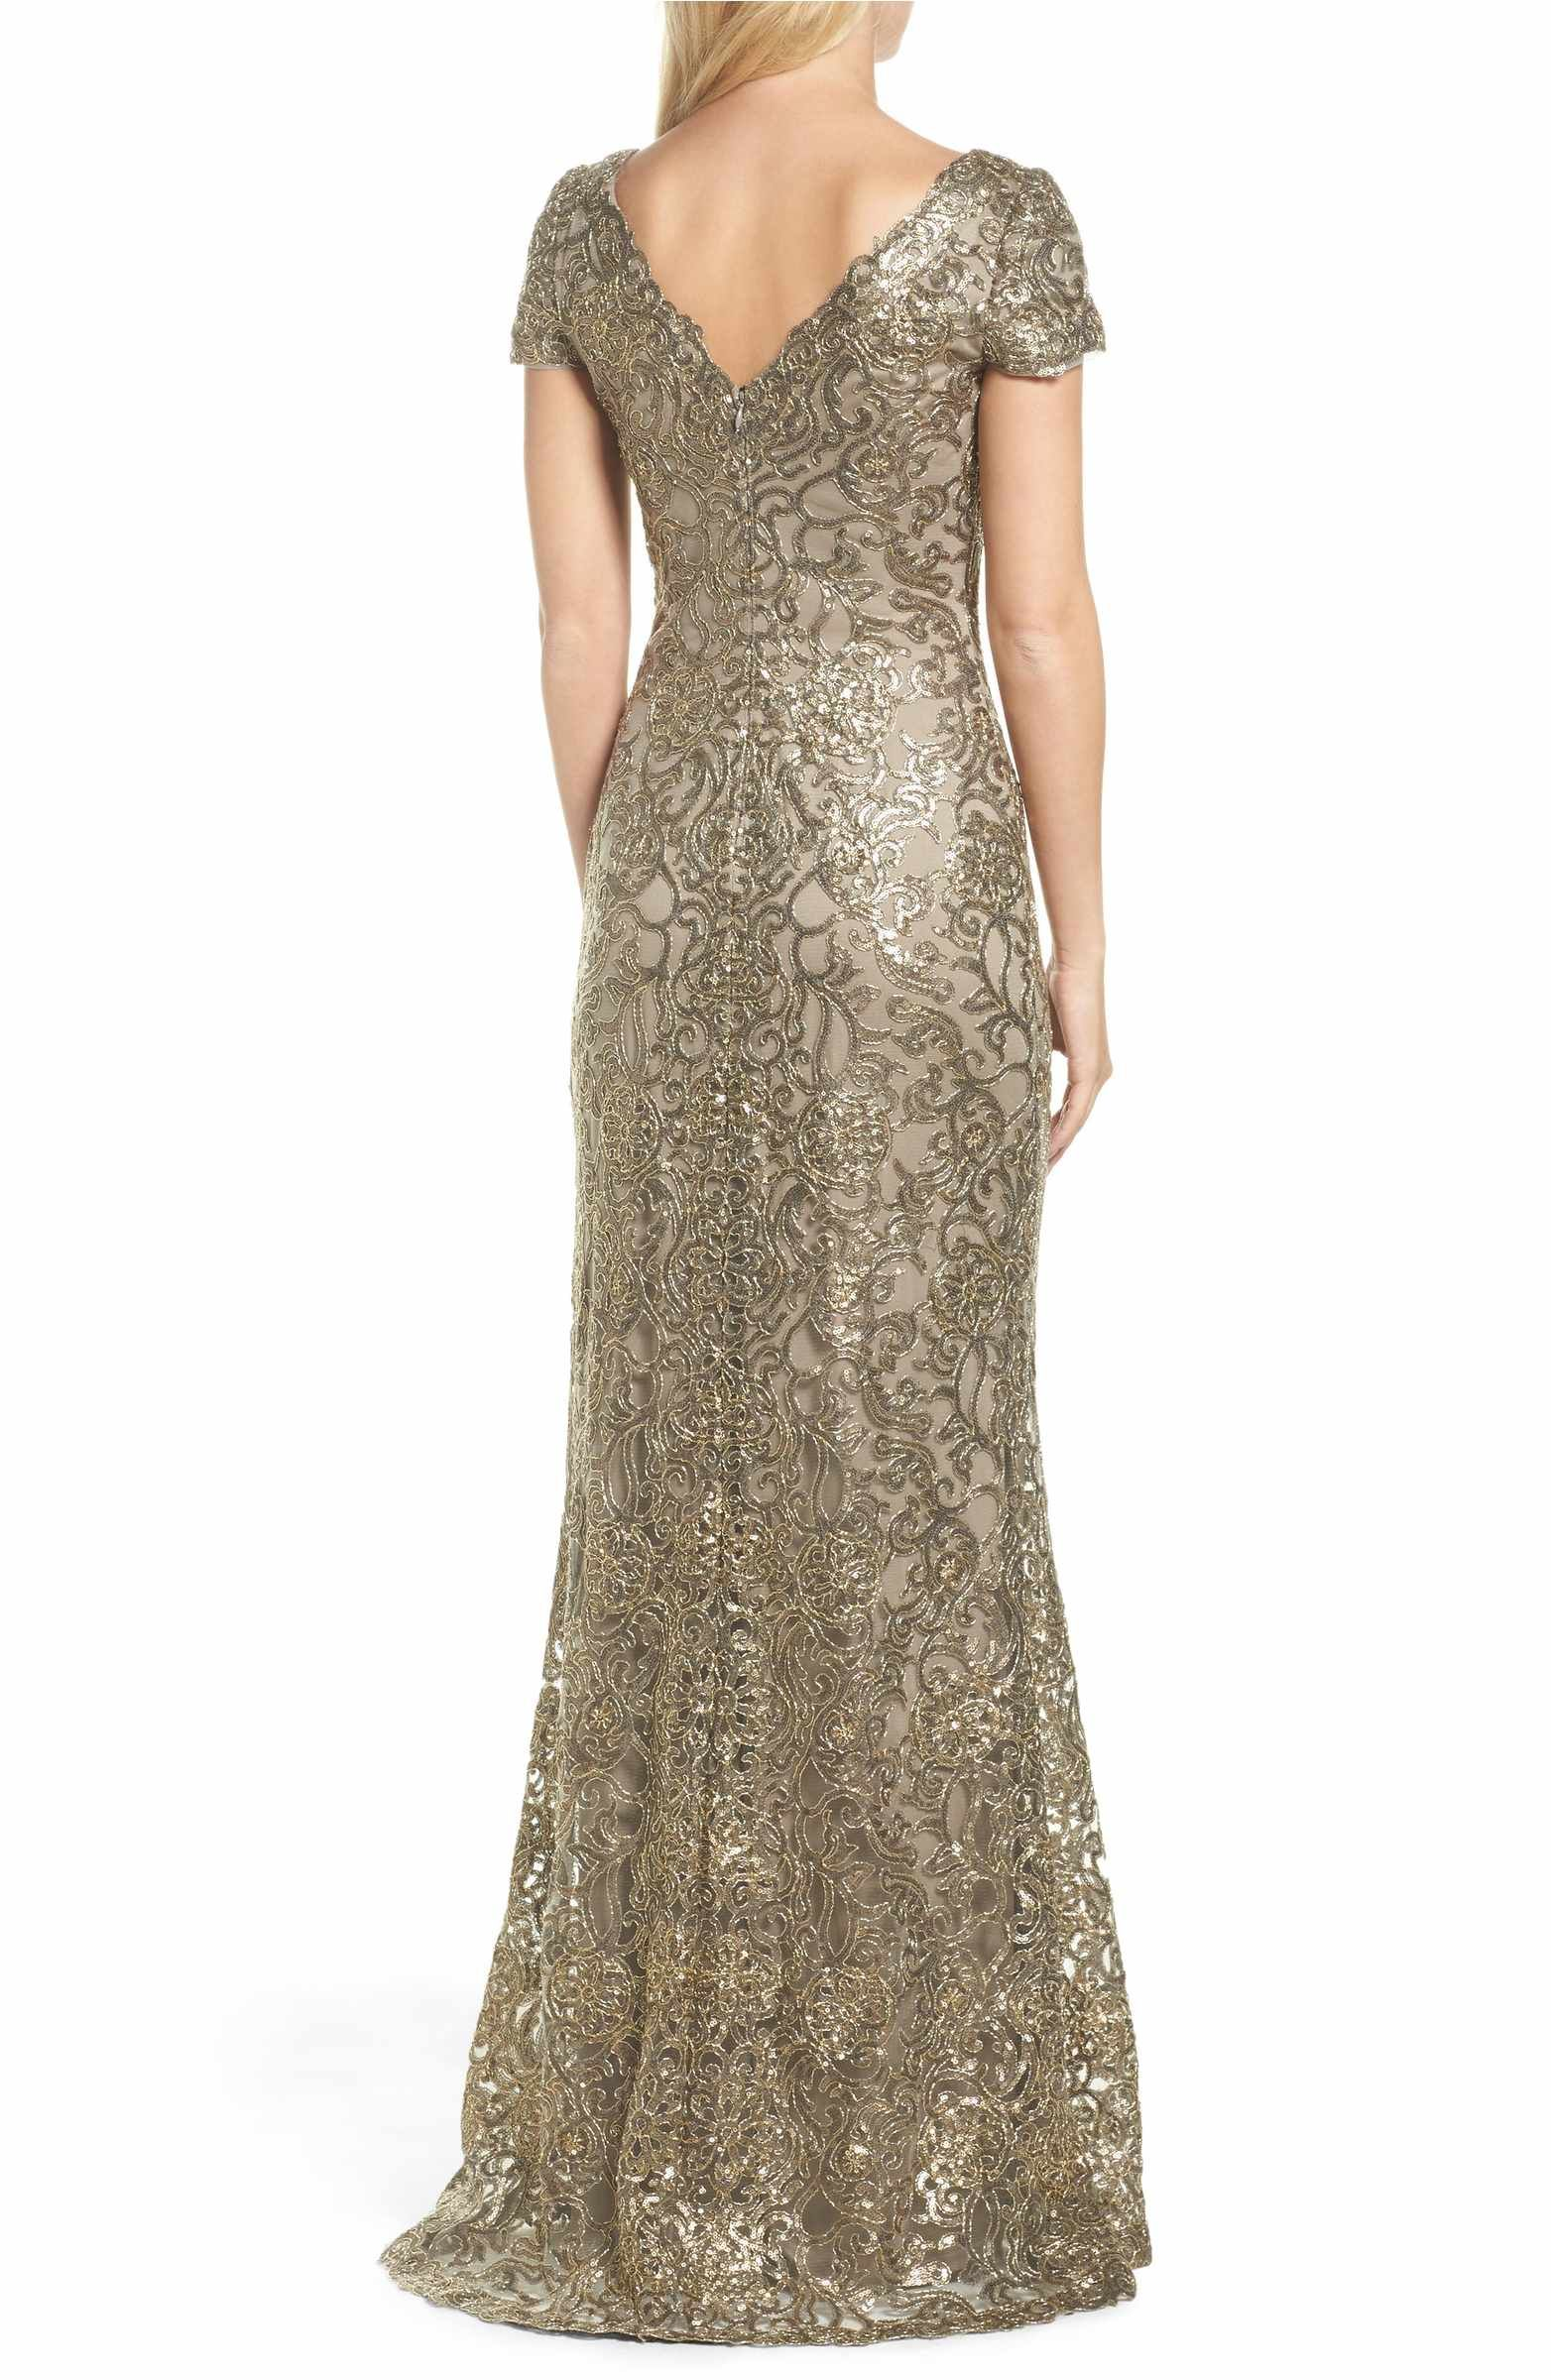 9e8a097efaab Main Image - Tadashi Shoji Corded Lace Gown | Weddings | Lace, Gowns ...